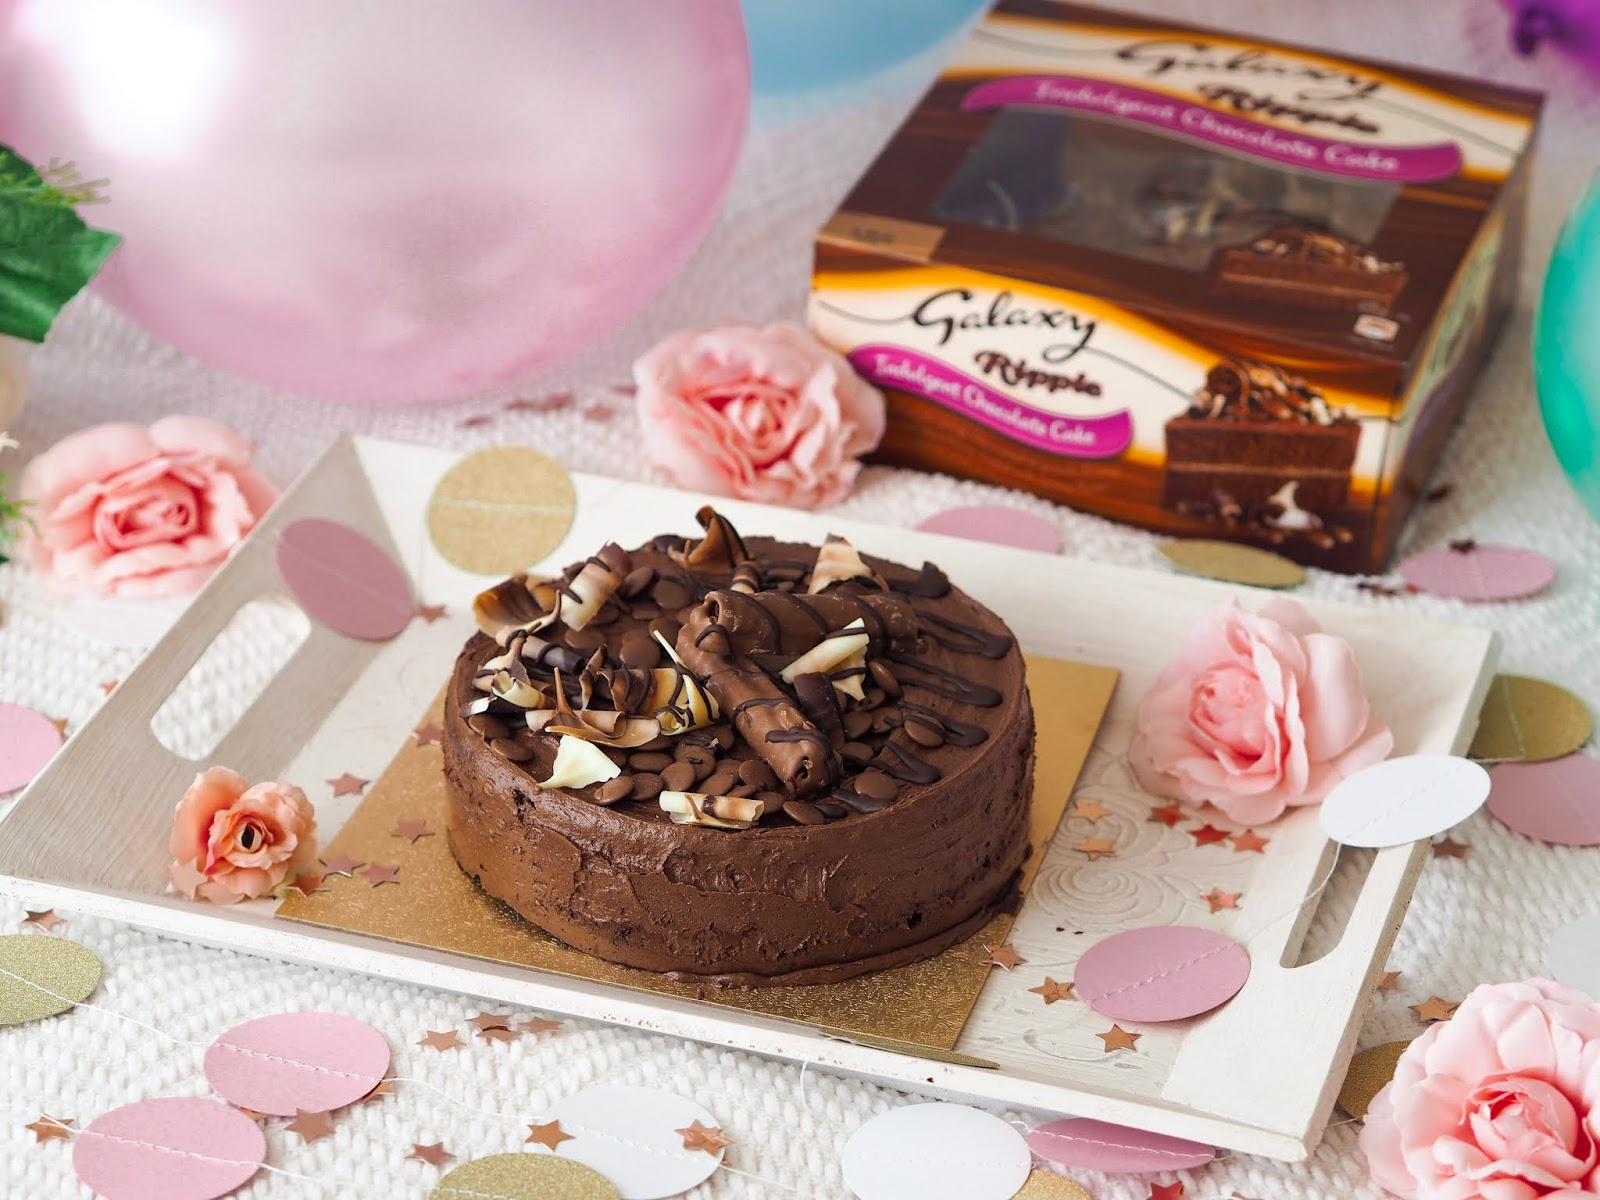 Celebrating Everyday with Galaxy, Galaxy Chocolate Cake, UK Food Blogger, UK Blogger, UK Lifestyle Blogger, Katie Kirk Loves